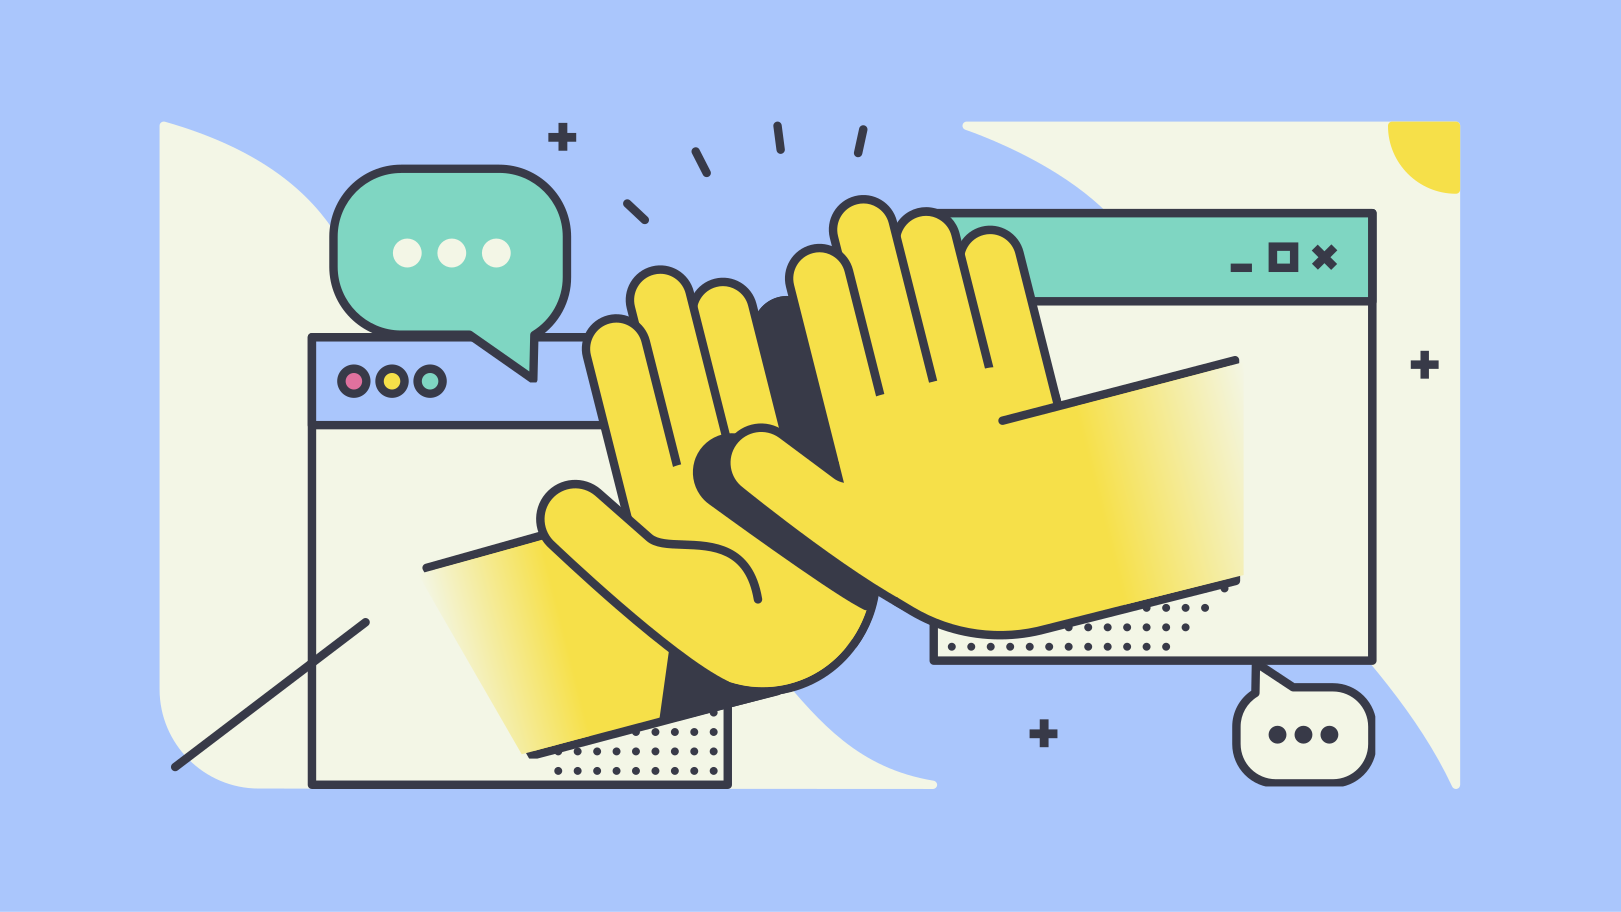 illustration of two hands extending from computer screens making a high-five gesture